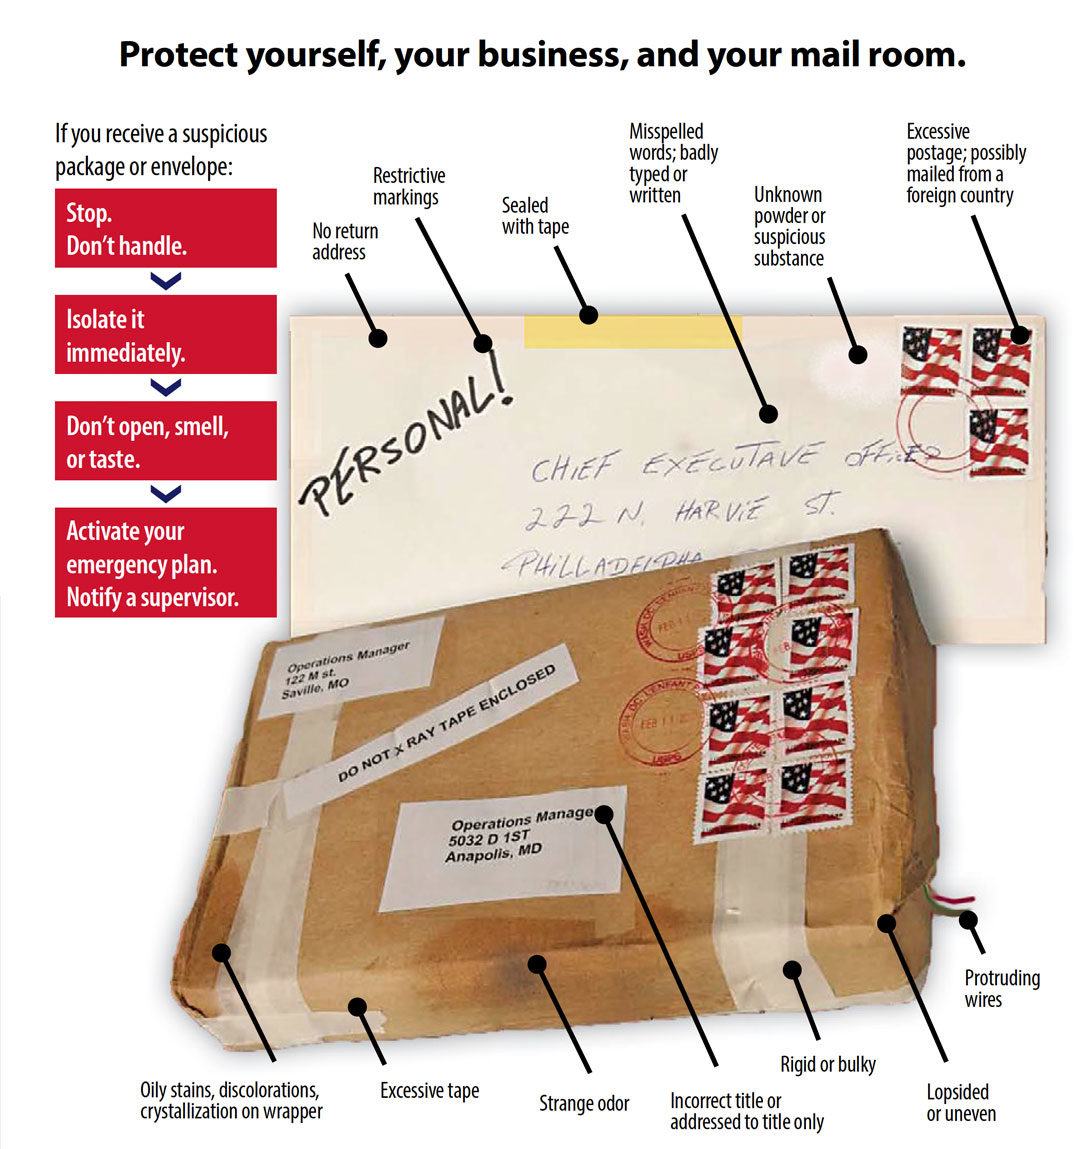 Protect yourself, your business, and your mail room. If you receive a suspicious package or envelope: Stop. Don't handle. Isolate it immediately. Don't open, smell, or taste. Activate your emergency plan. Notify a supervisor. Characteristics of a possible suspicious package: No return address. Restrictive markings. Sealed with tape. Misspelled words and/or badly typed or written. Unknown powder or suspicious substance. Excessive postage and/or possibly mailed from a foreign country. Oily stains, discolorations, crystallization on wrapper. Excessive tape. Strange odor. Incorrect title or address to title only. Rigid or bulky. Lopsided or uneven. Protruding wires.